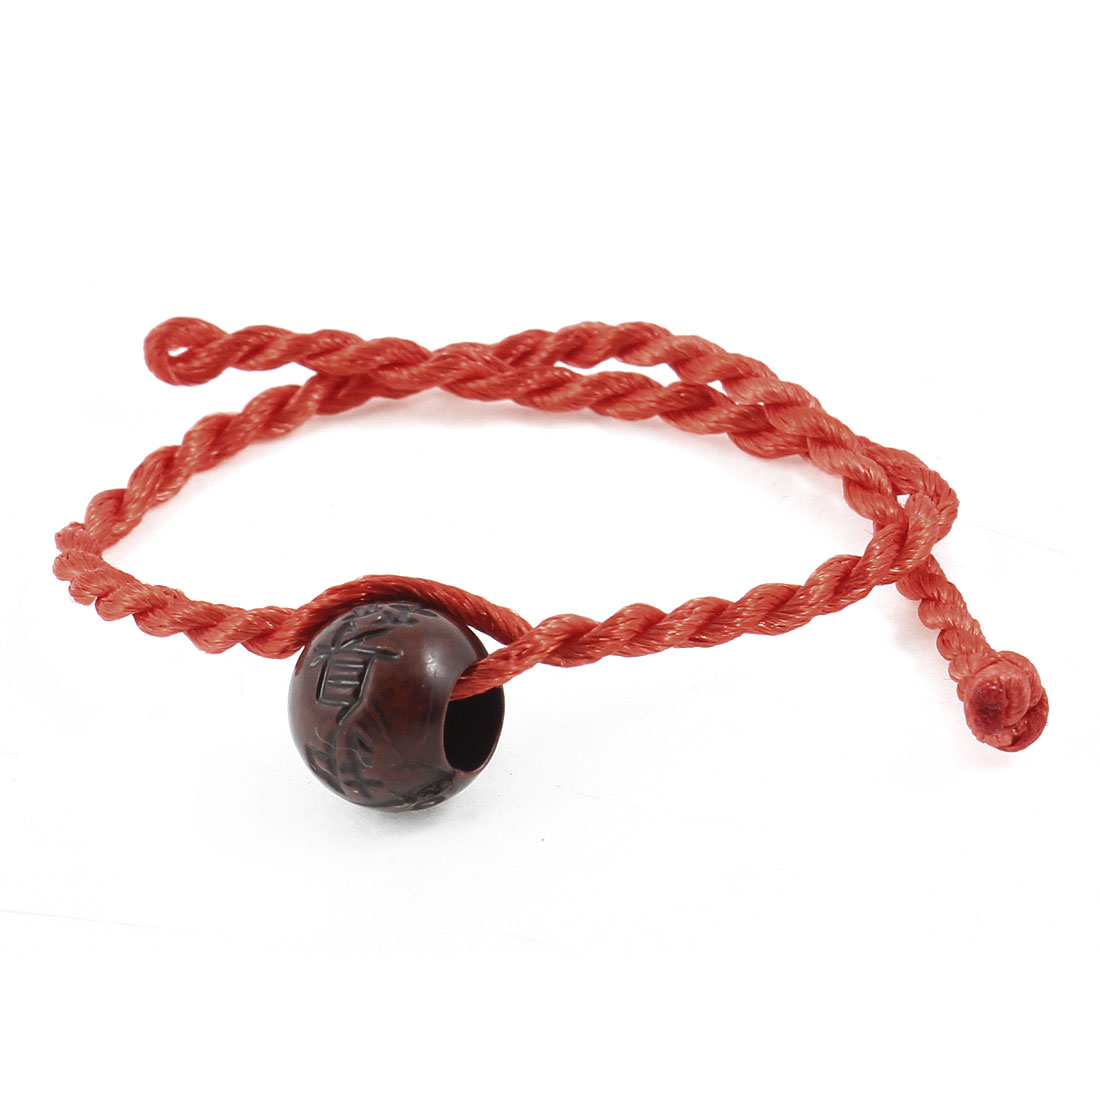 Button Knot Closure Wooden Chinese Block Red Rope Wrist Bracelets Bangles